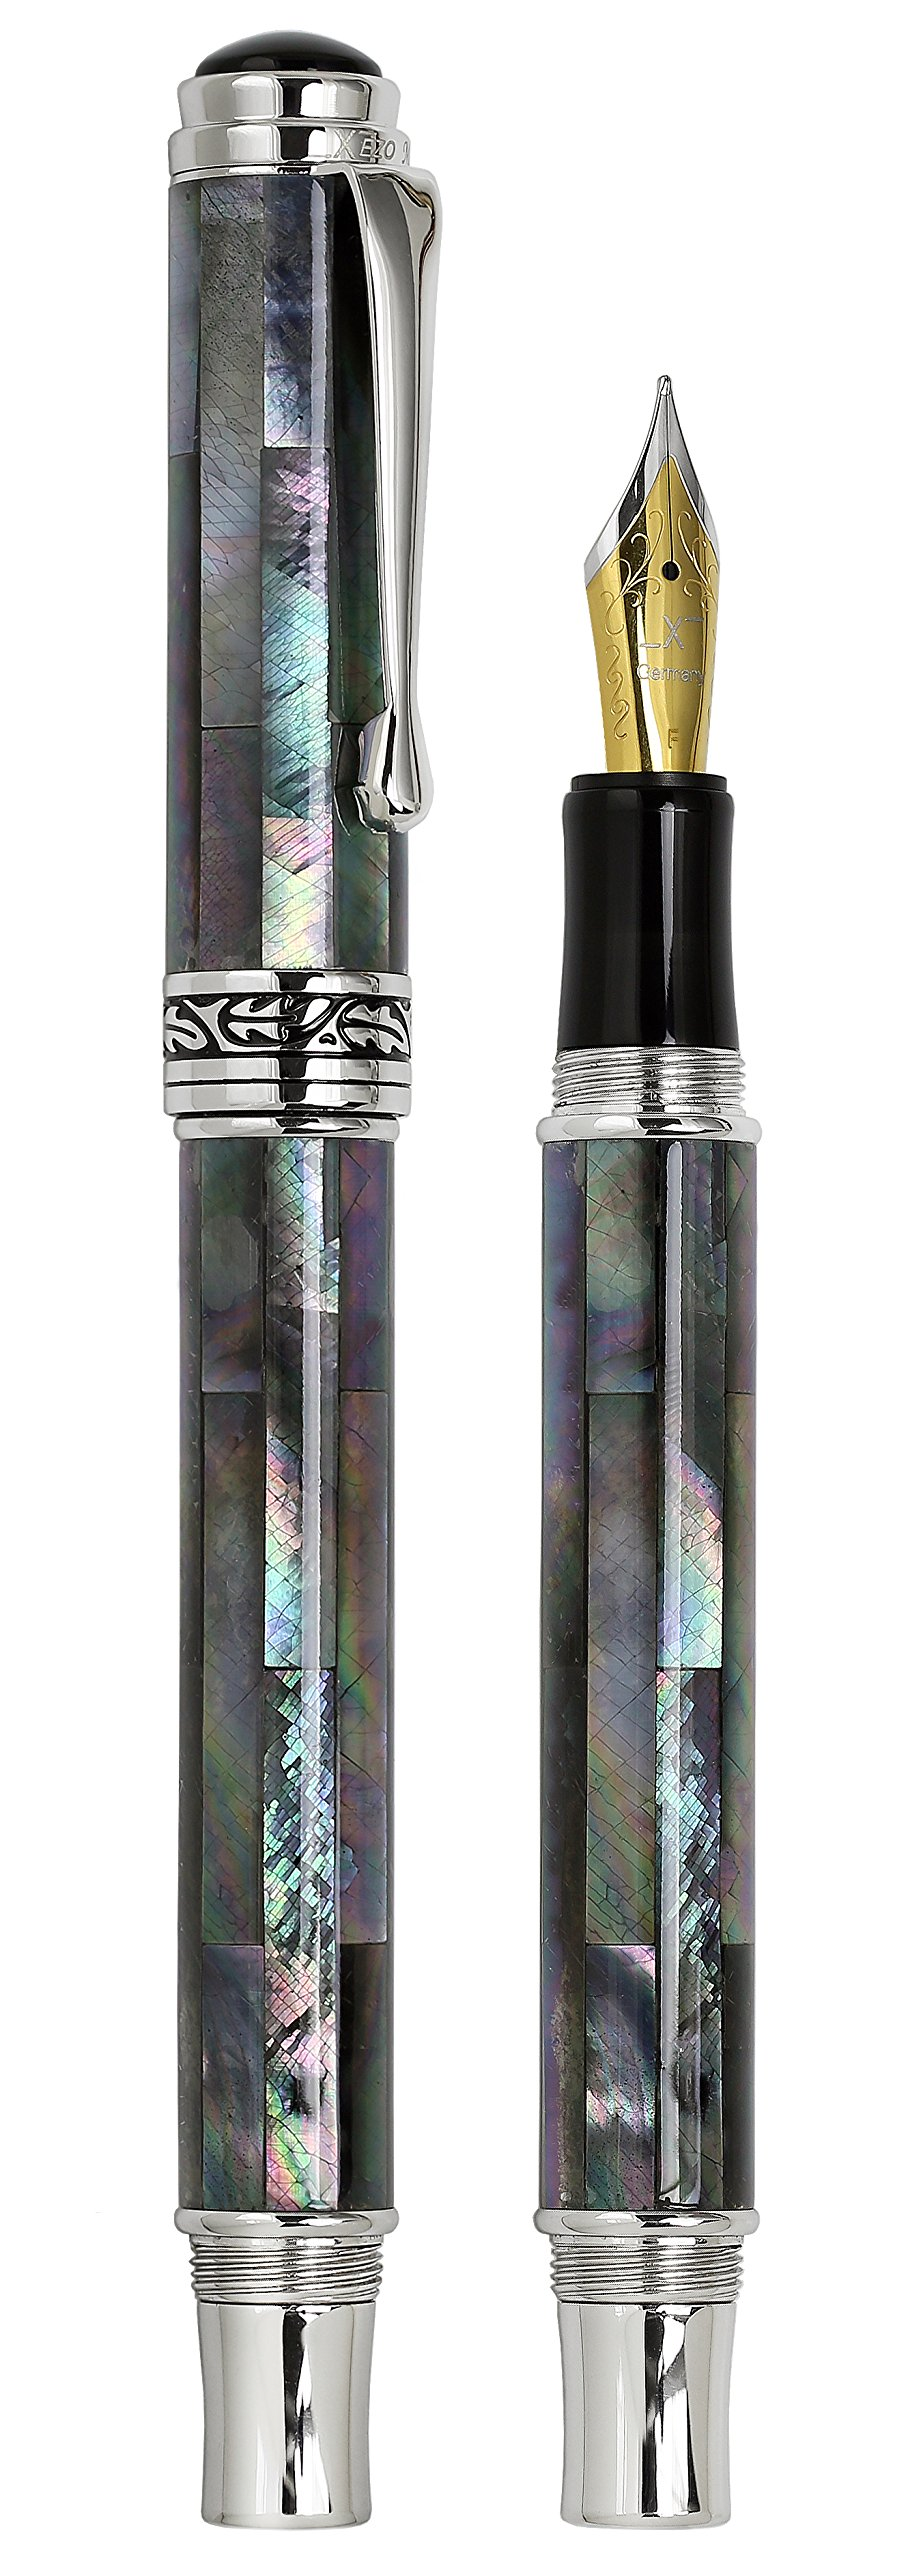 Xezo Maestro Iridescent Natural Black Mother of Pearl Platinum Plated Fine Fountain Pen. No Two Pens Alike by Xezo (Image #2)